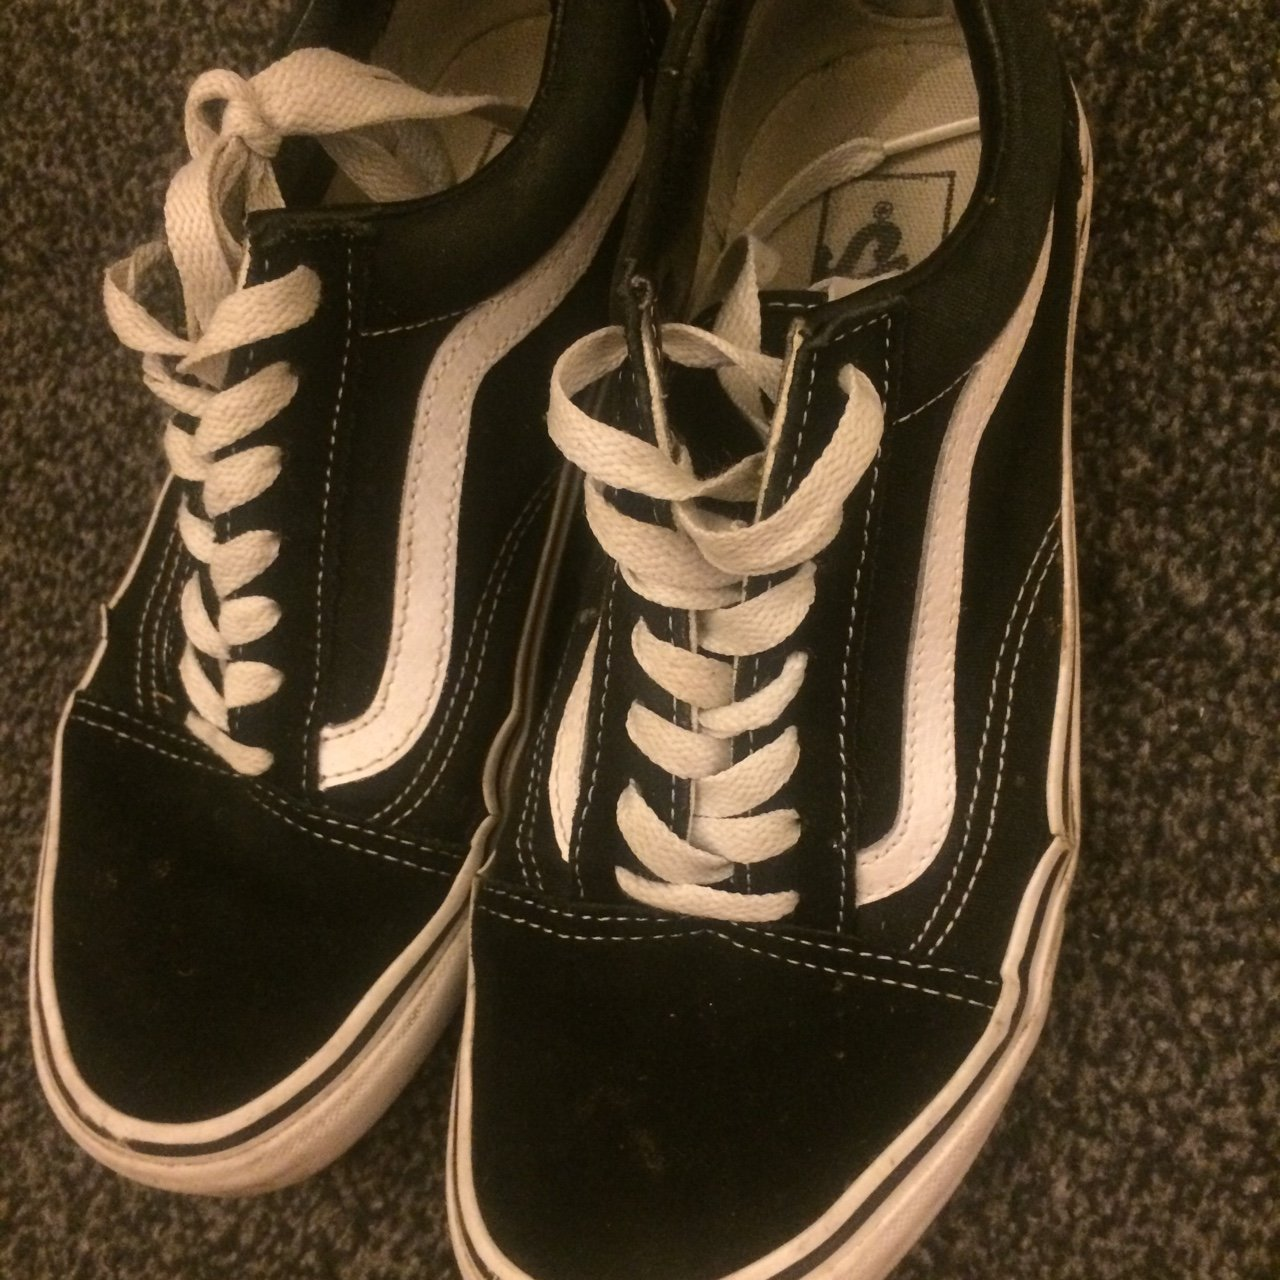 dd11289ed905a5 £15 plus free delivery ❤ Black and white vans size 5. Worn - Depop